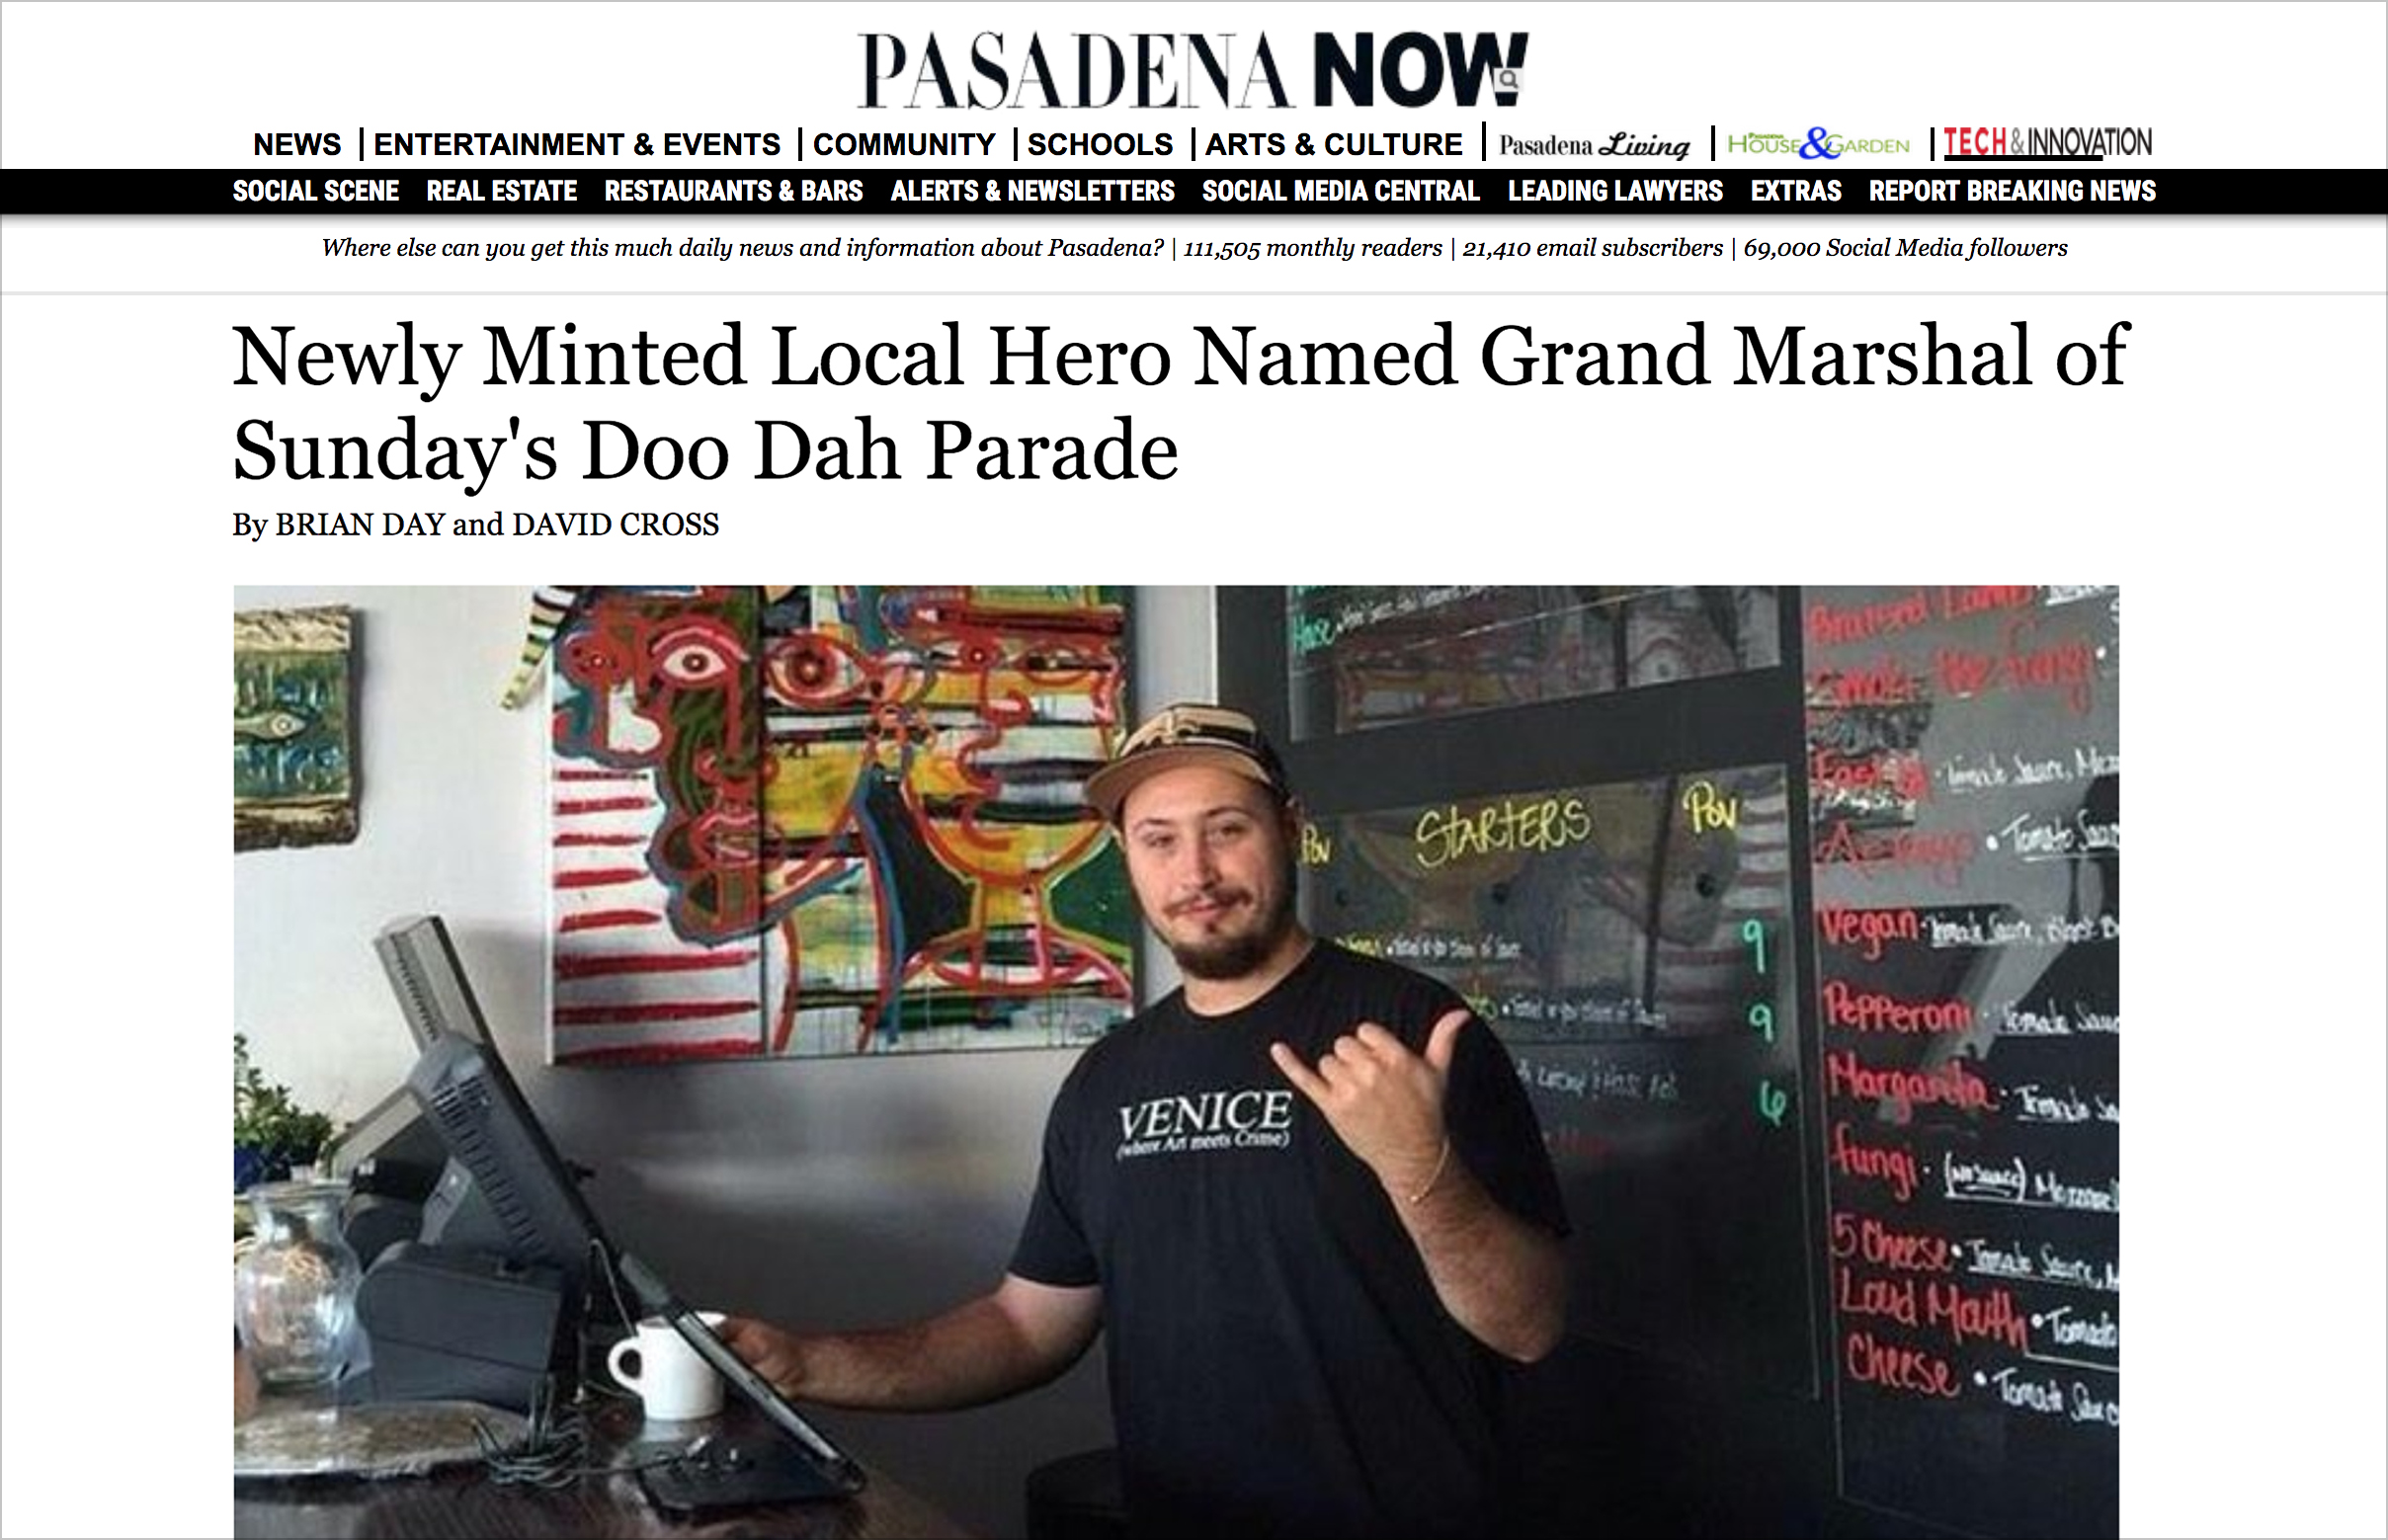 Editor's Note: We wish to clarify that the Doo Dah Parade this weekend is on Sunday, November 18. An earlier version of the story said otherwise.